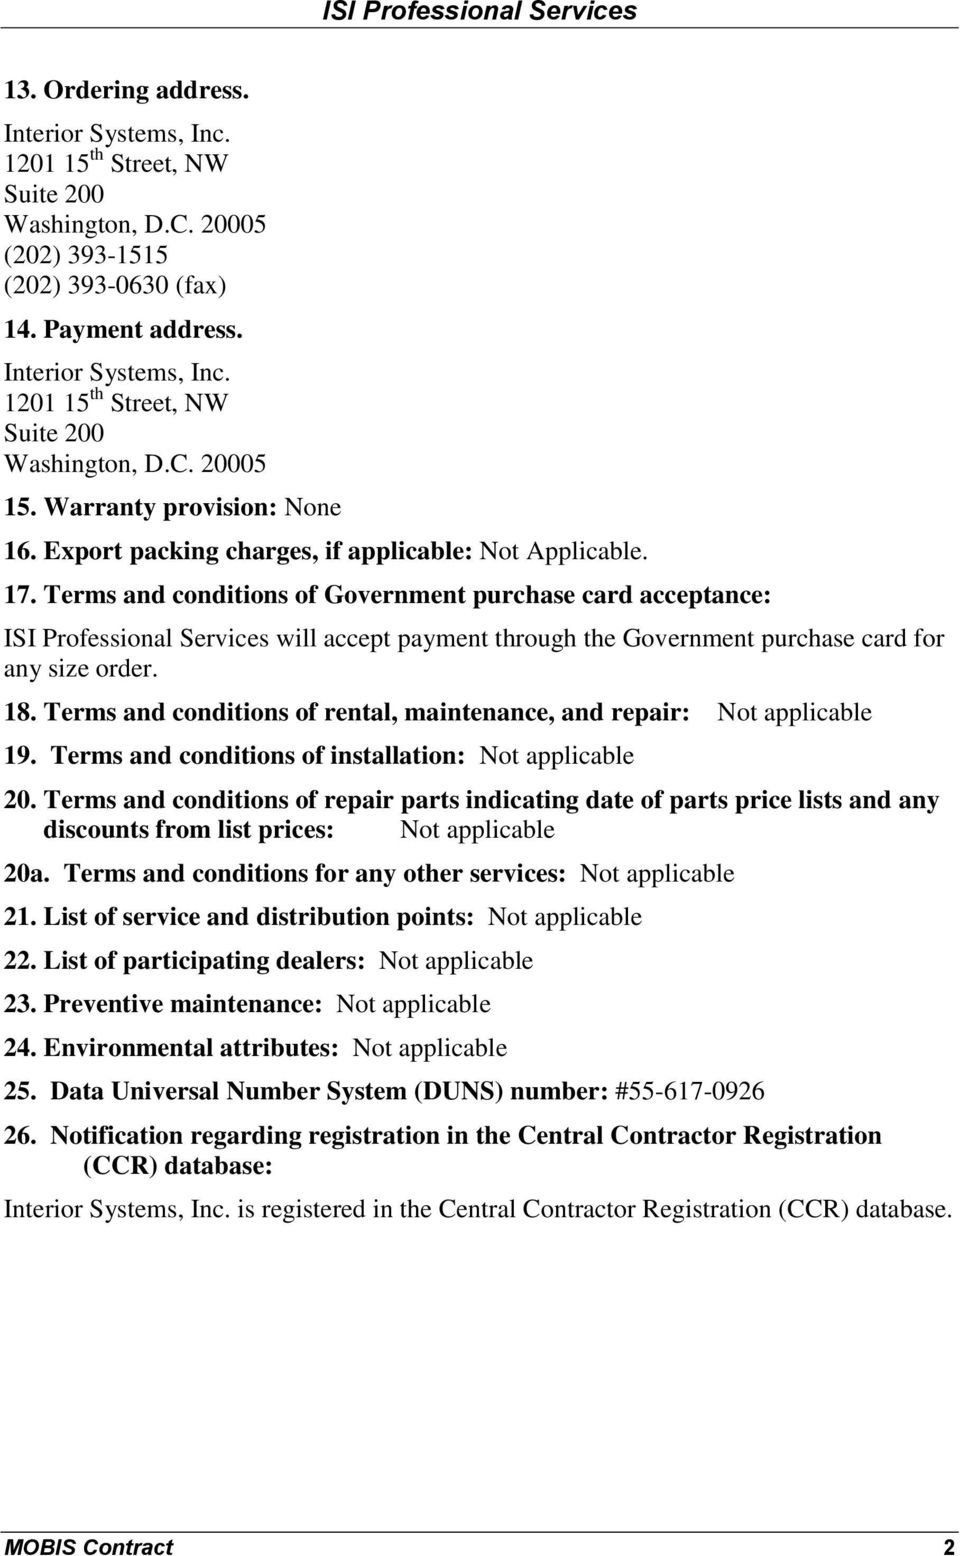 Terms and conditions of Government purchase card acceptance: ISI Professional Services will accept payment through the Government purchase card for any size order. 18.